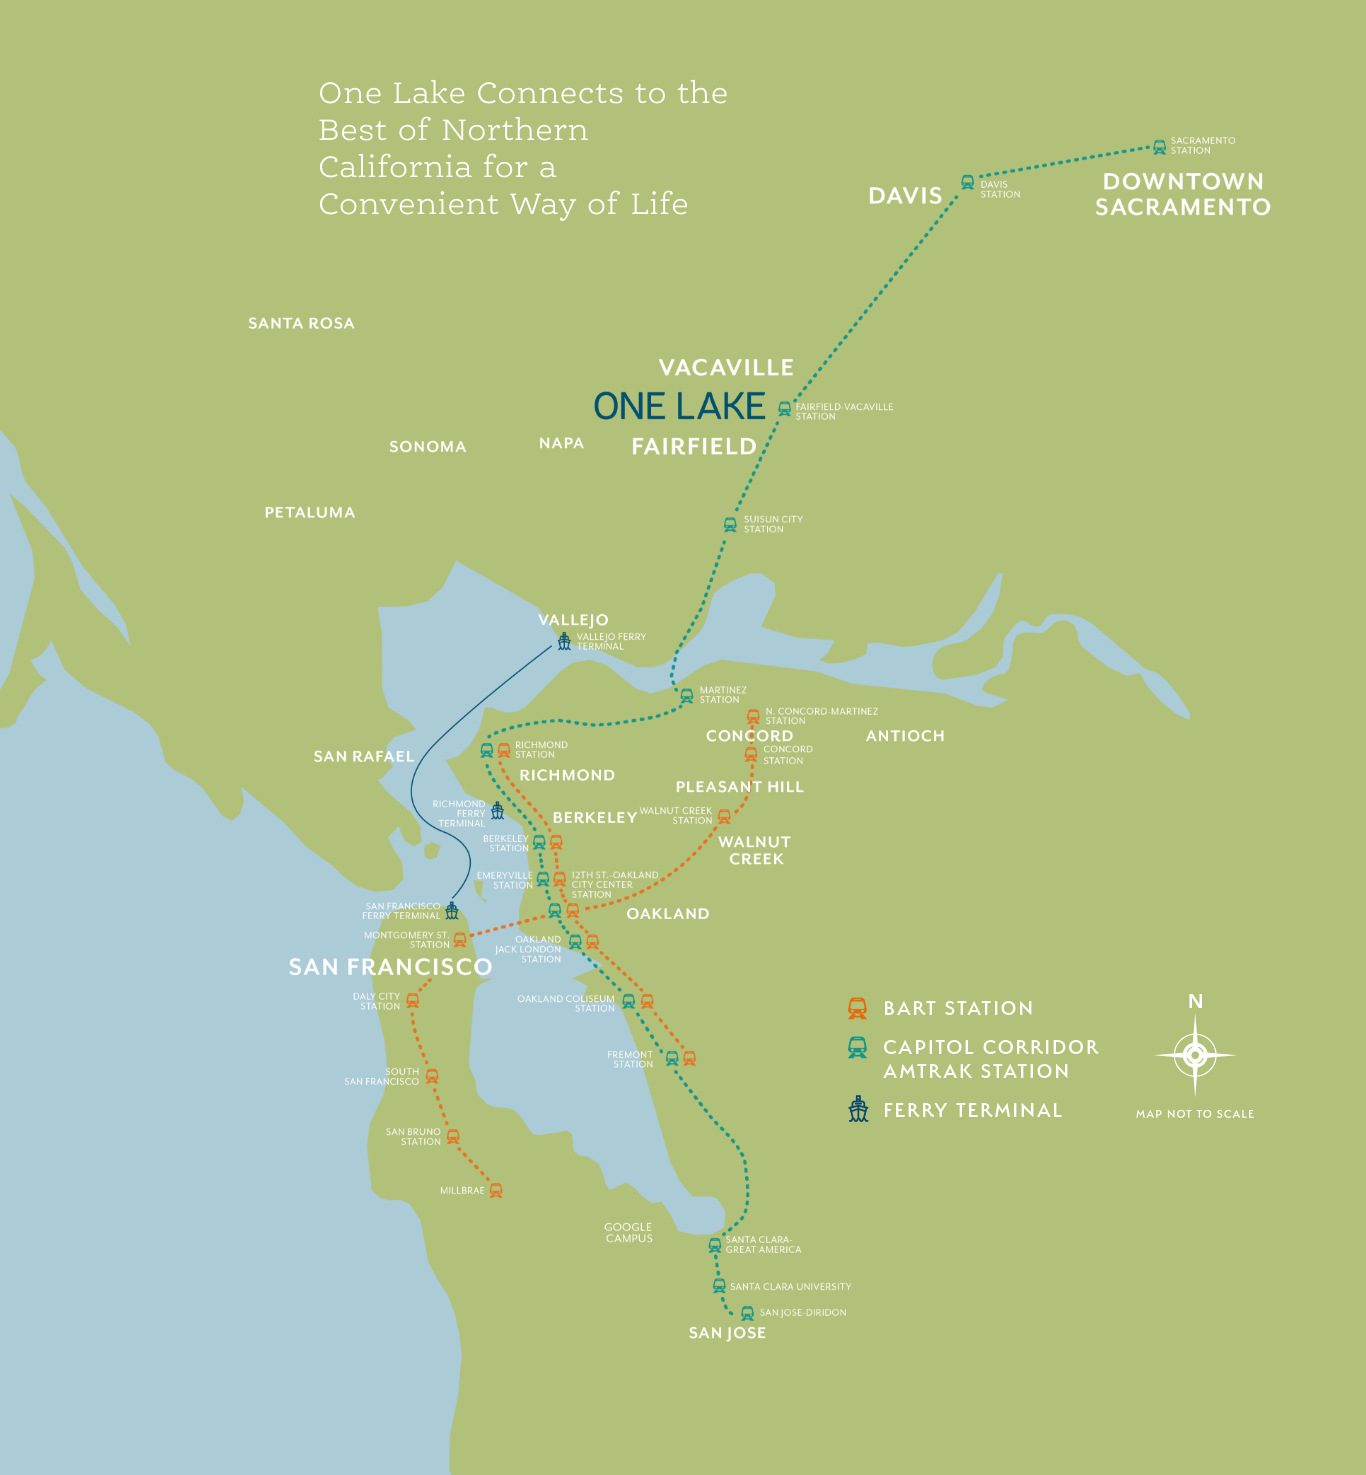 one lake area map showing the public transportation options and routes: Bart Stations, Capitol Corridor Amtrak Stations and Ferry terminals